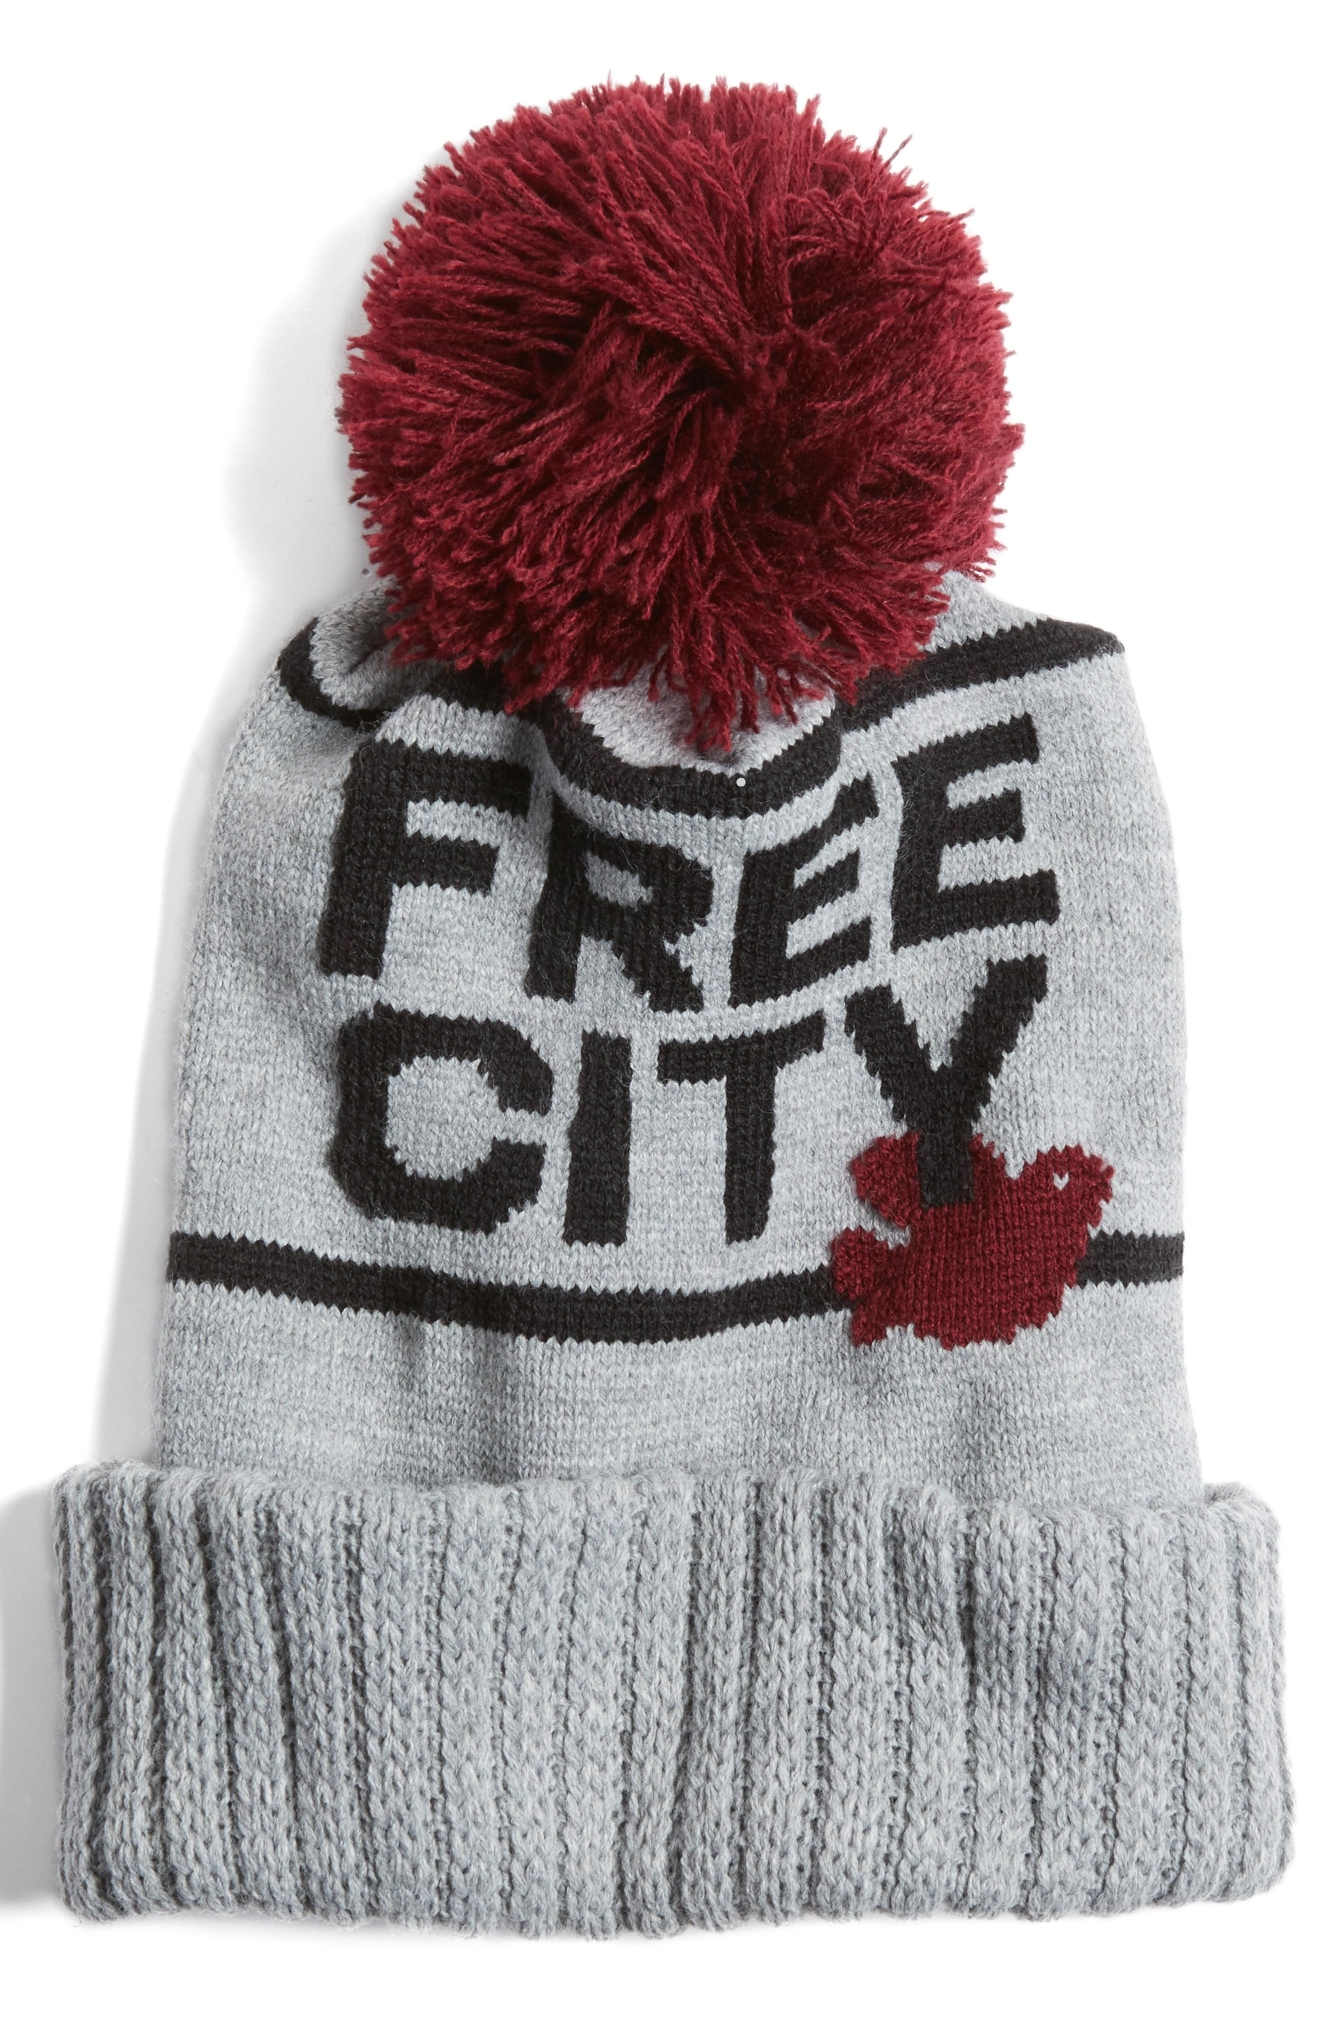 FREECITY LARGE SHERPA HAT - $58. Buy at shop.nordstrom.com/c/pop-in-olivia-kim (Image: Nordstrom)